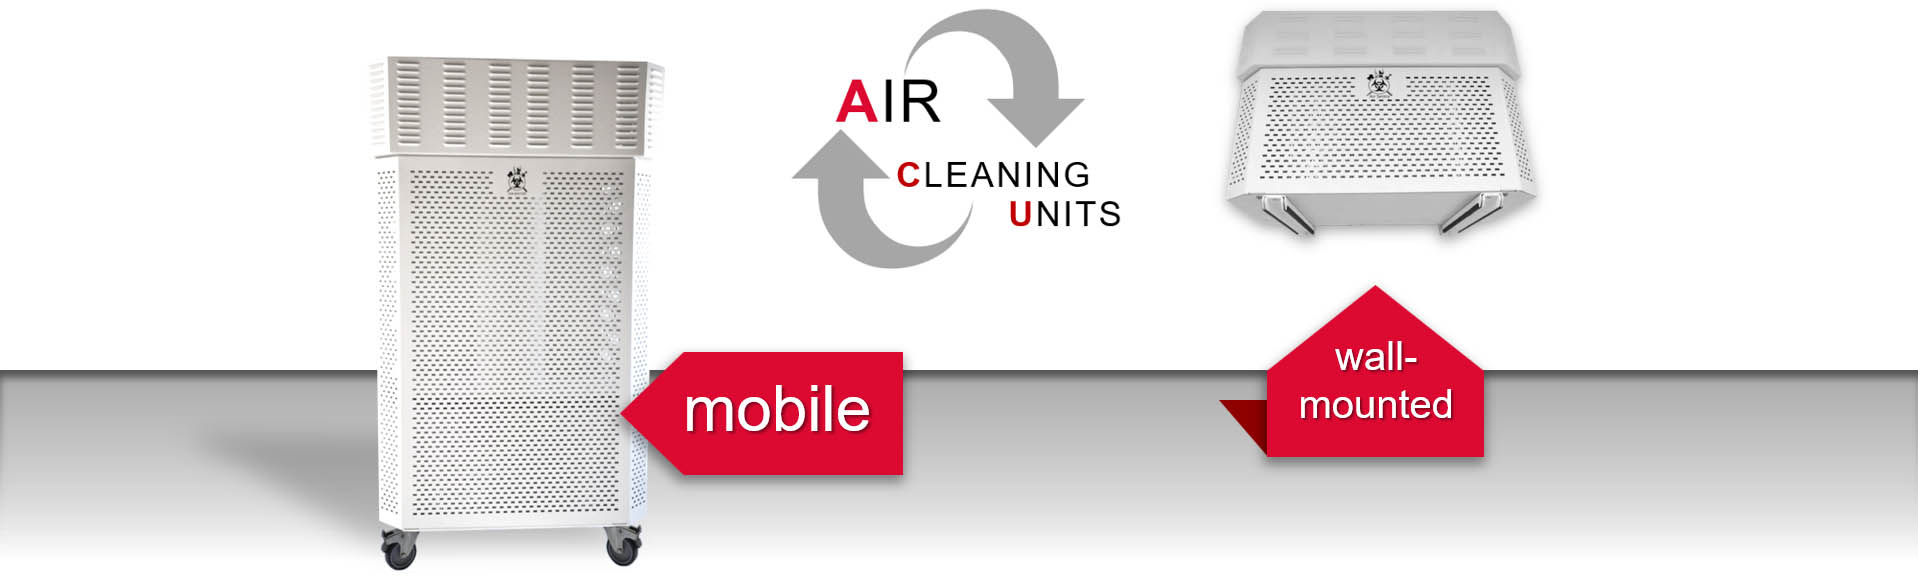 air-cleaning_mobile_wall-mounted